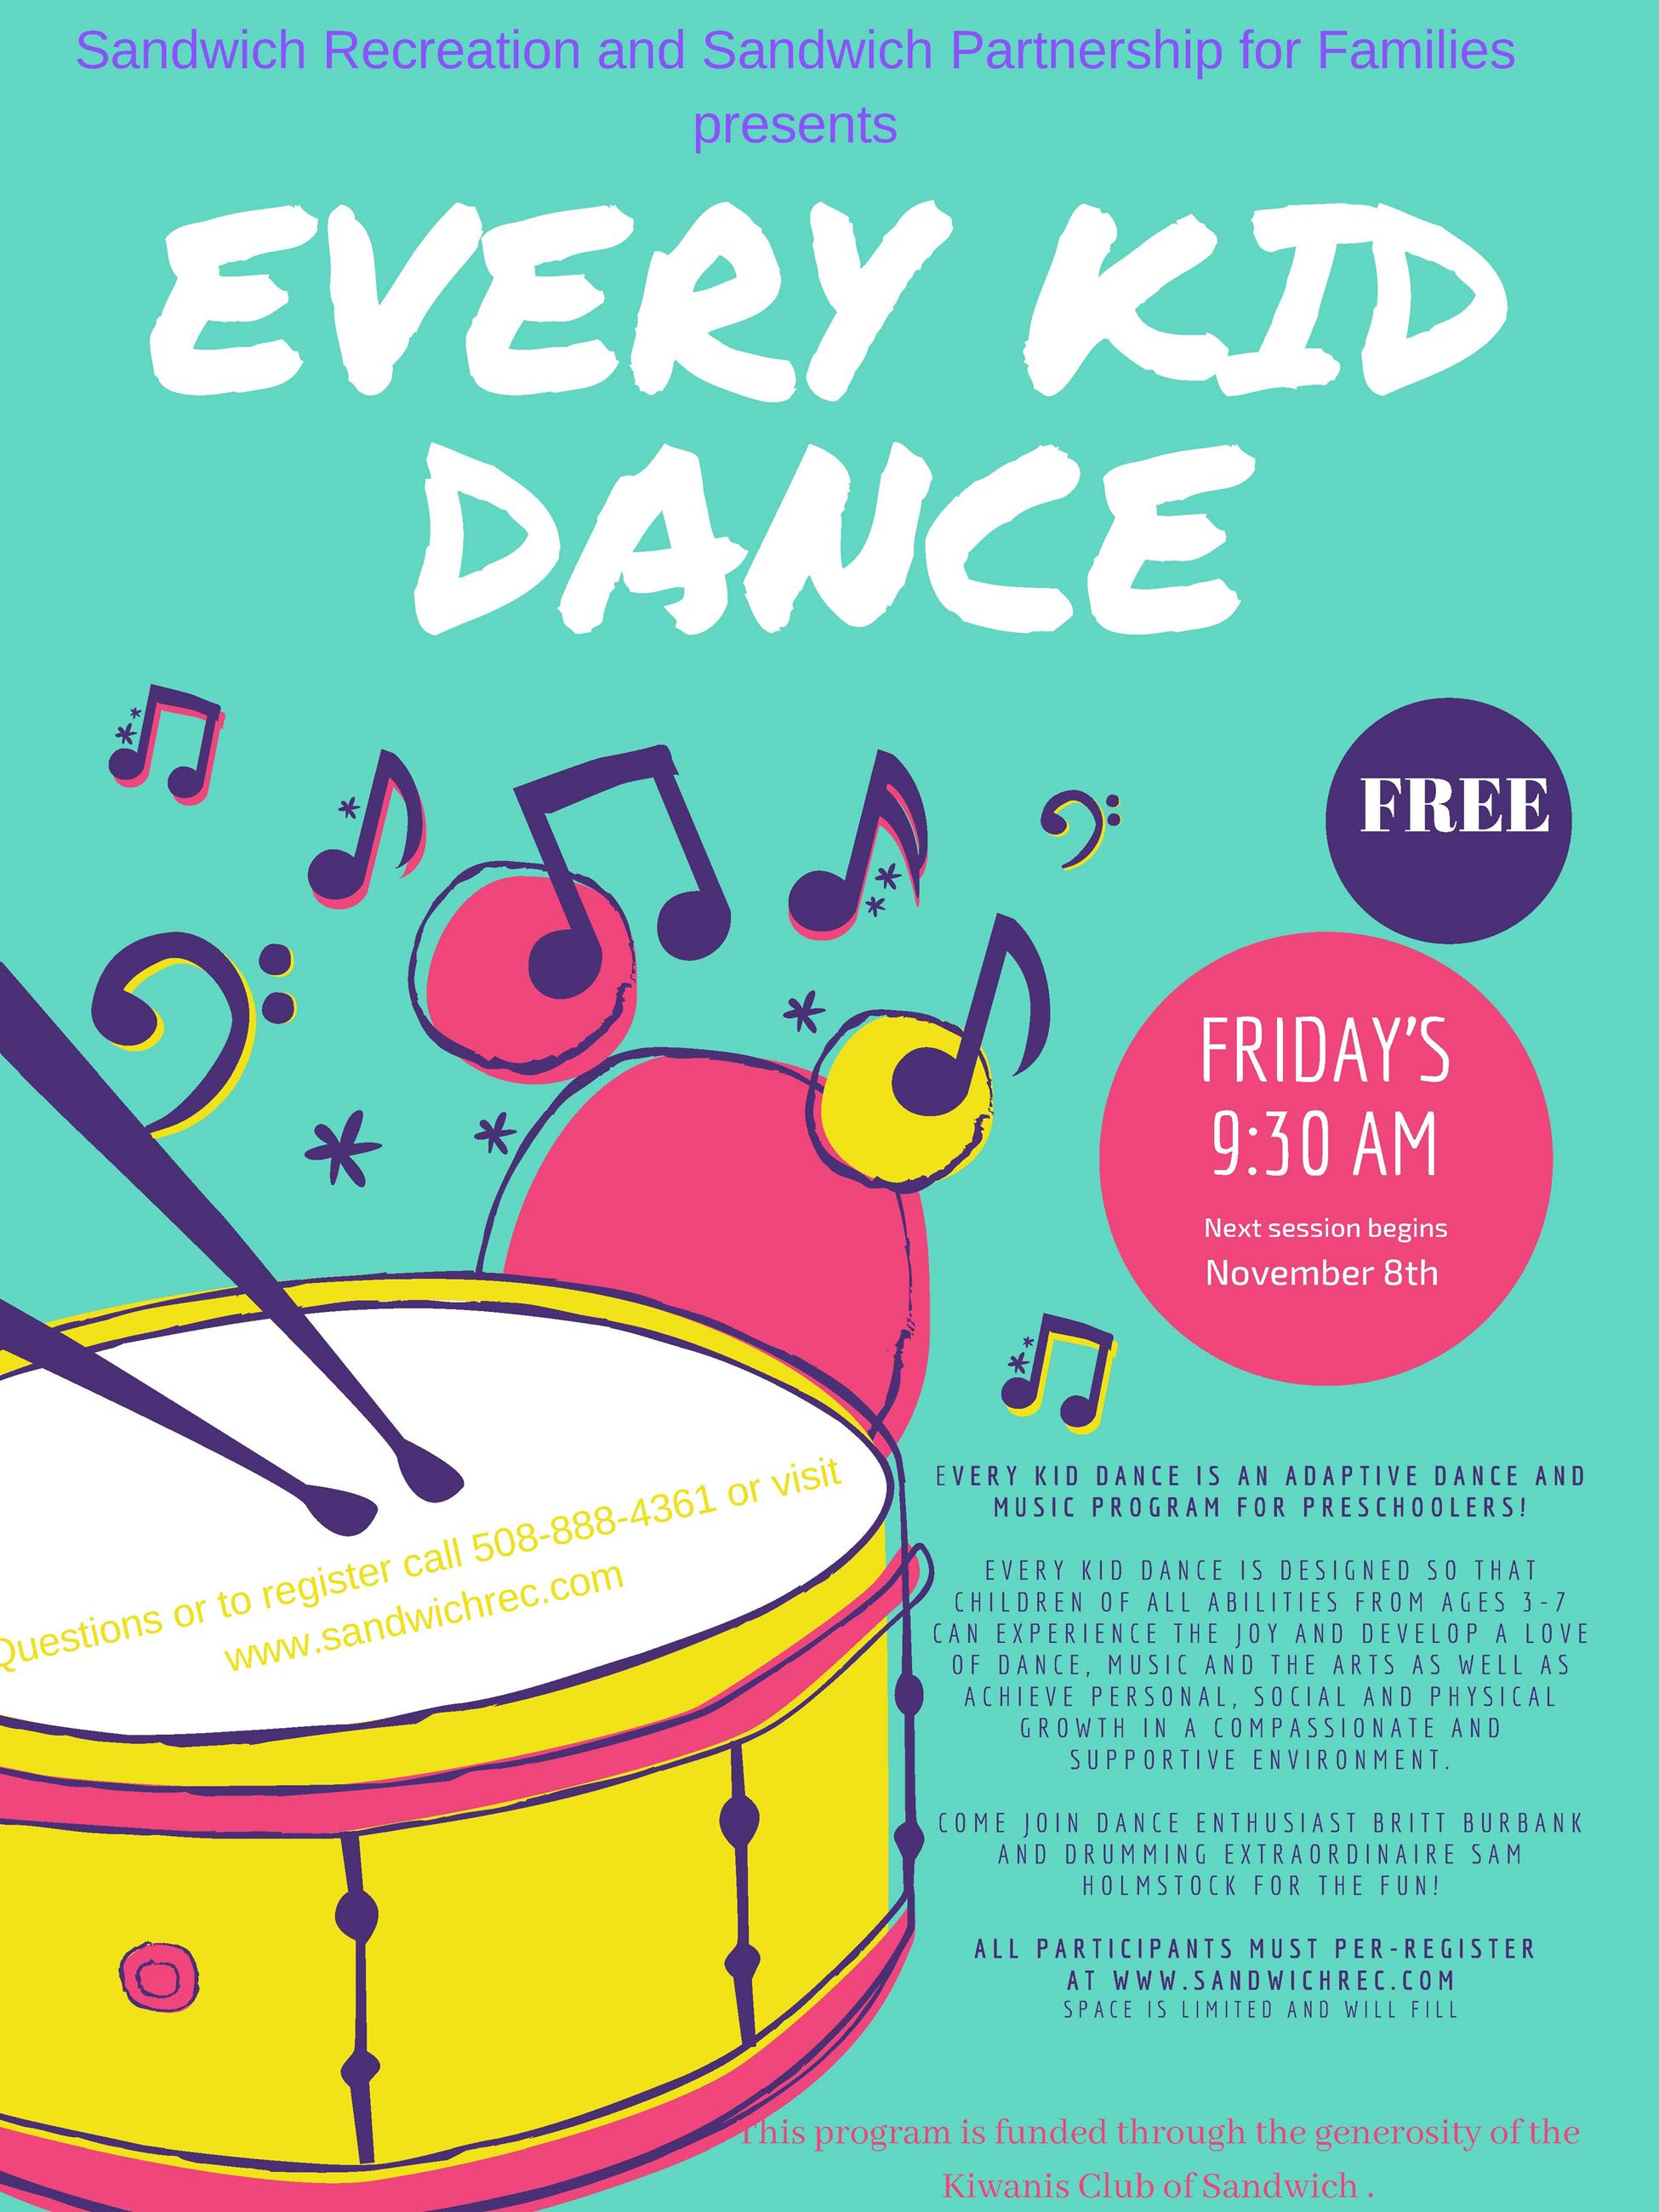 Every Kid Dance fall 2019 Flyer